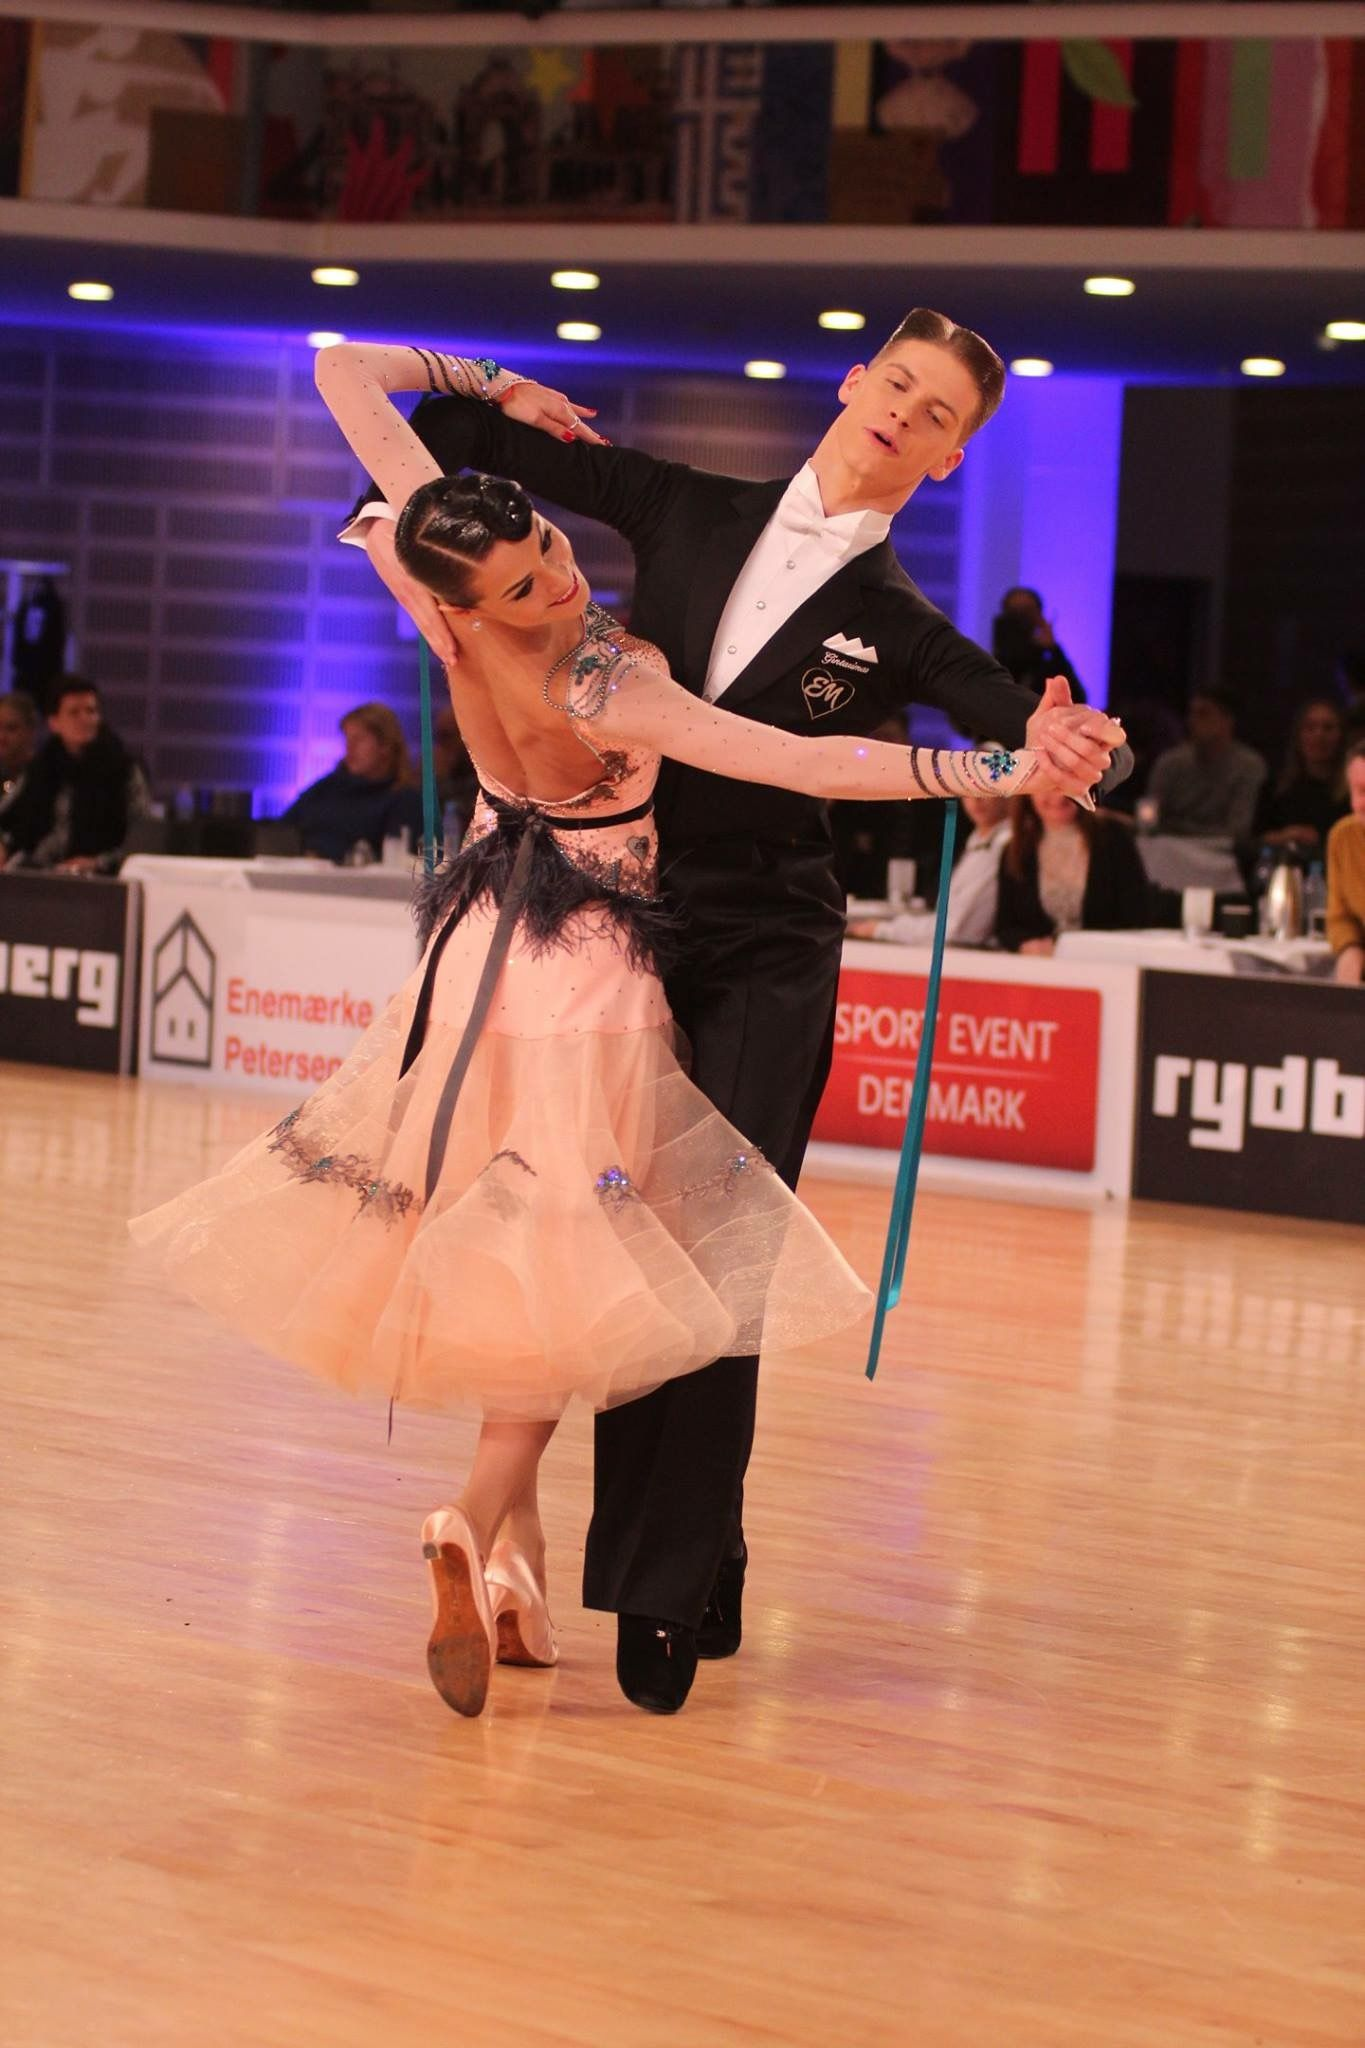 Vestidos Baile Salon Pin By Michelle Yiu On Dancesport Pinterest